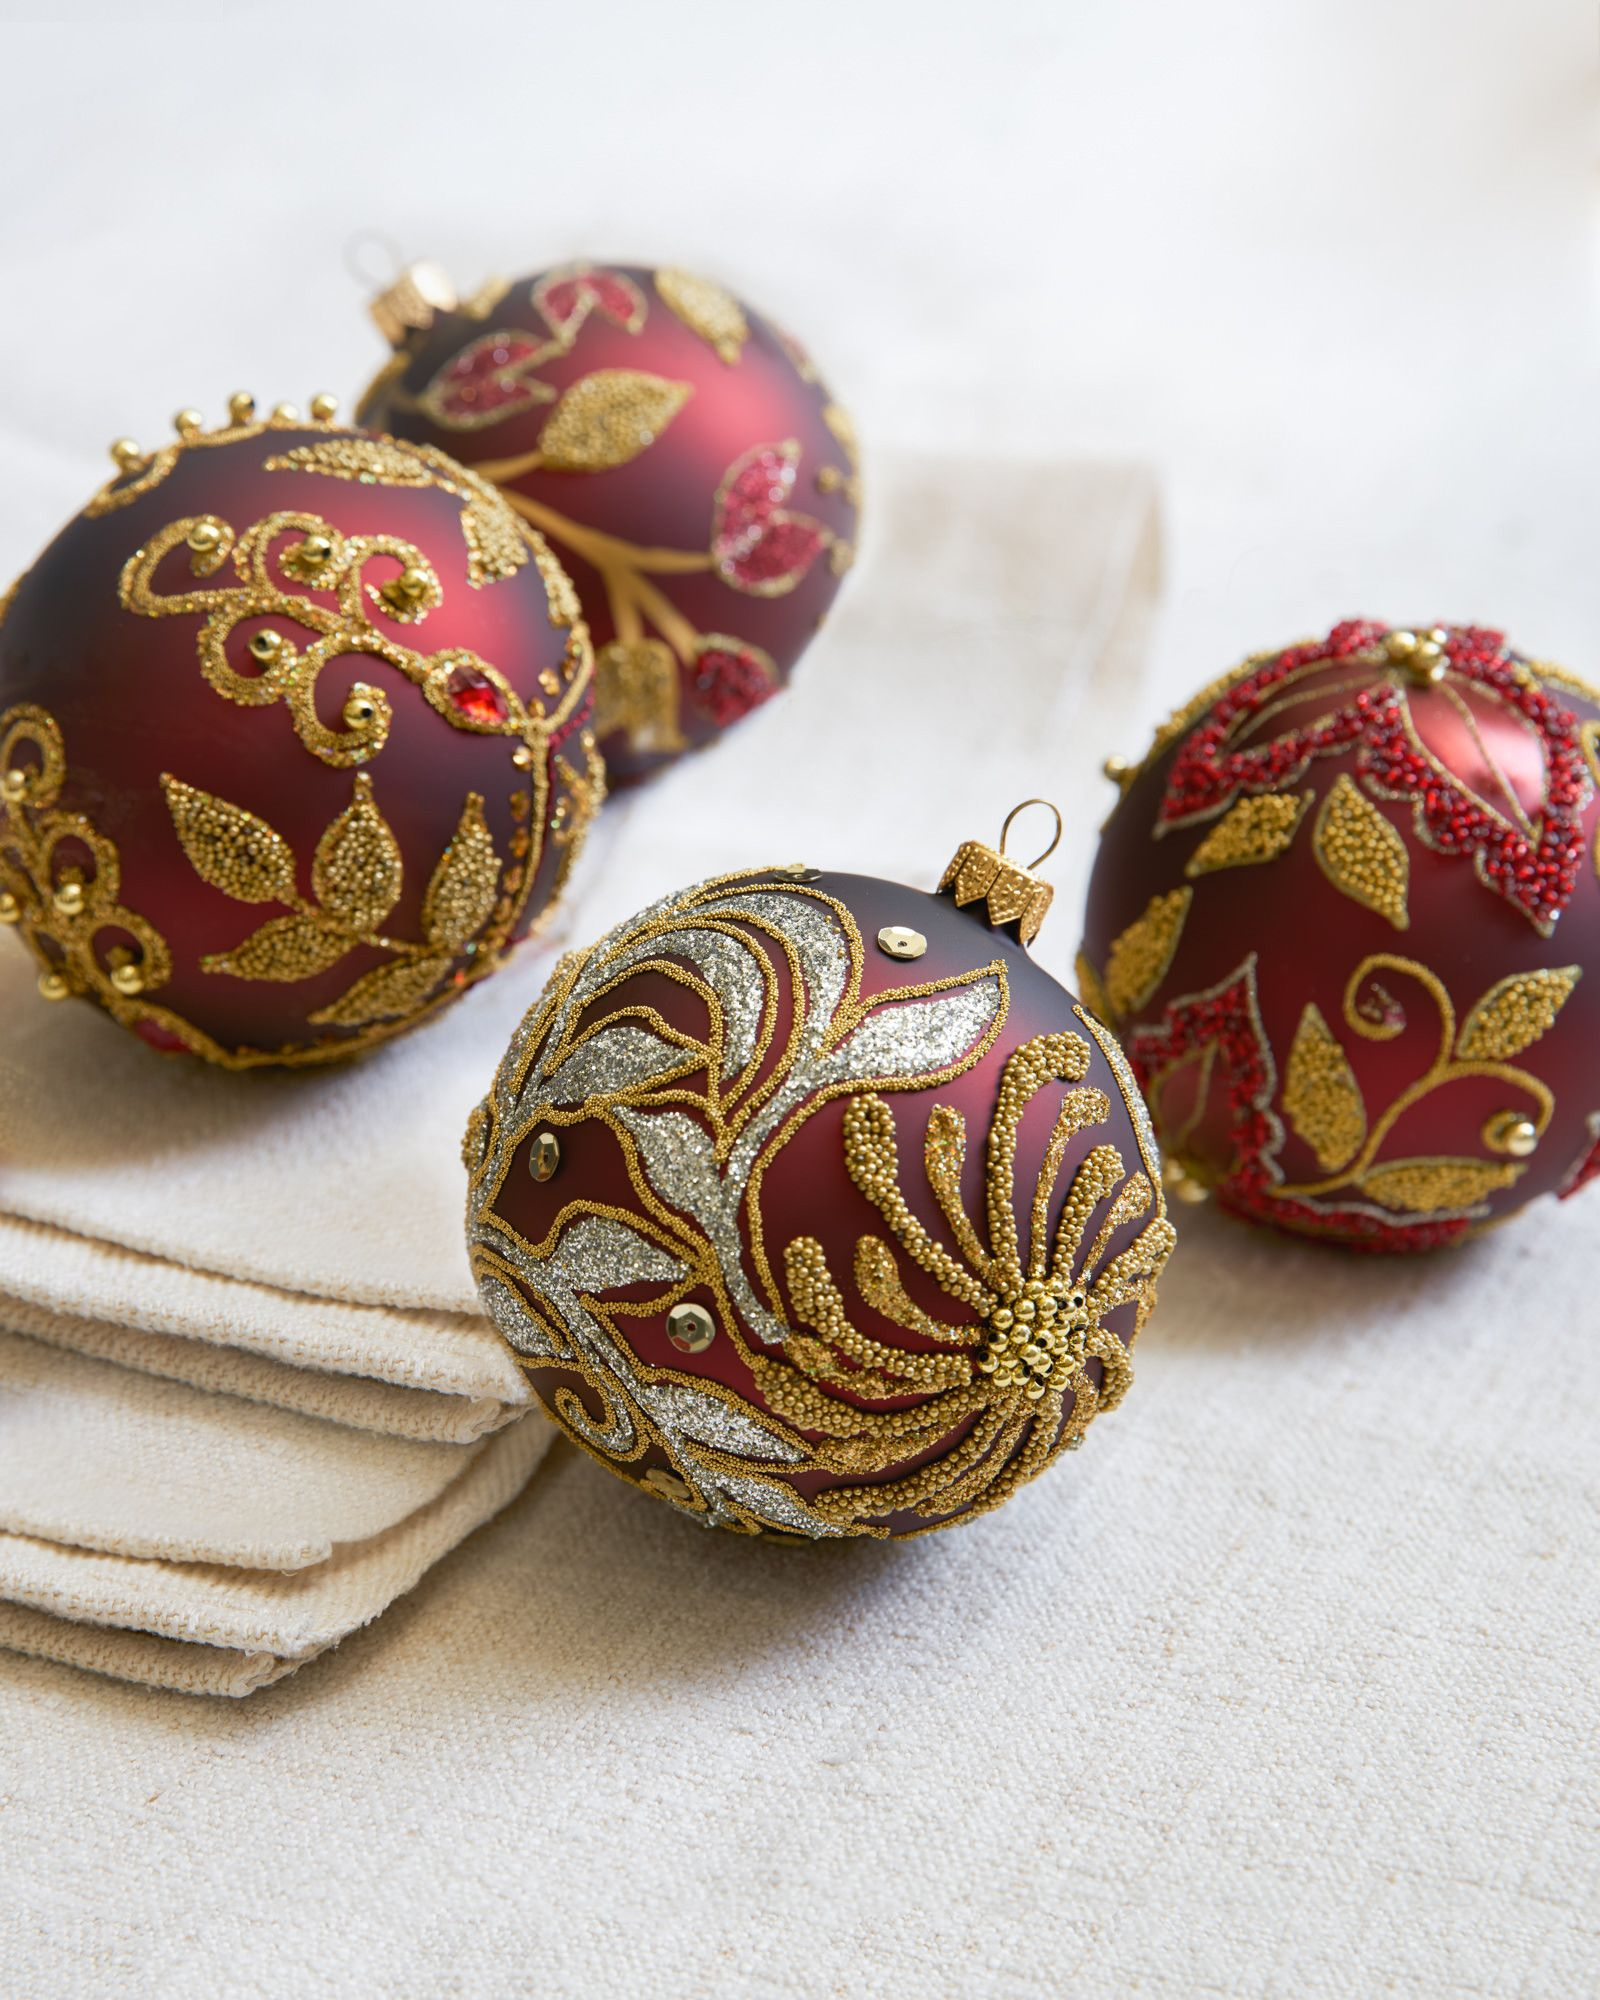 Glass Ball Ornaments Decorate: Decorated Glass Ball Ornaments,Set Of 4